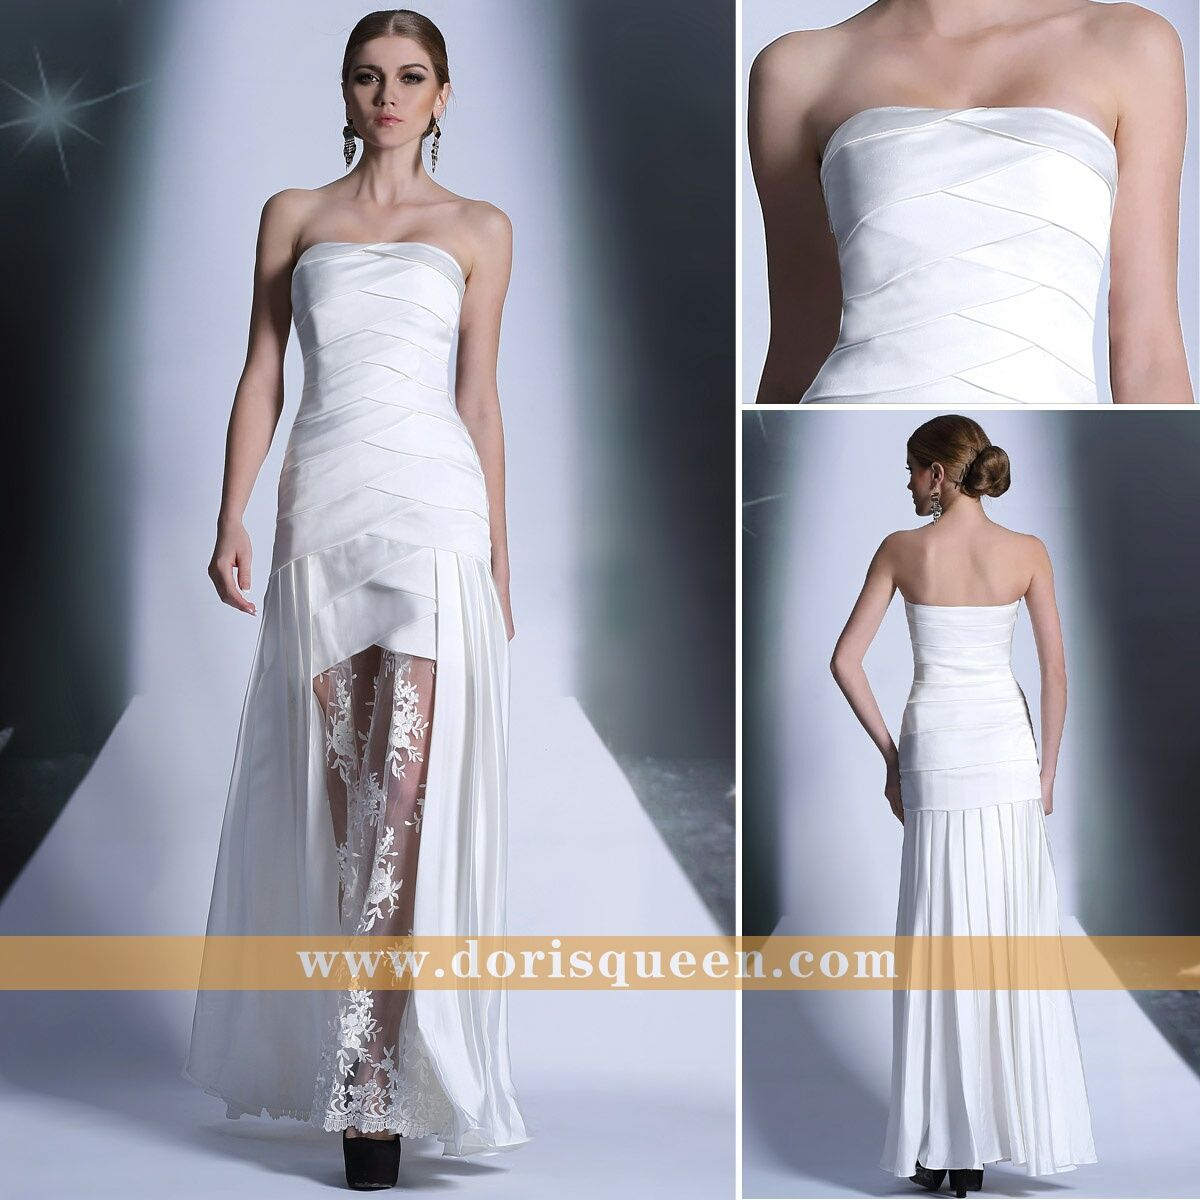 Zuhair murad wedding dresses see through strapless white